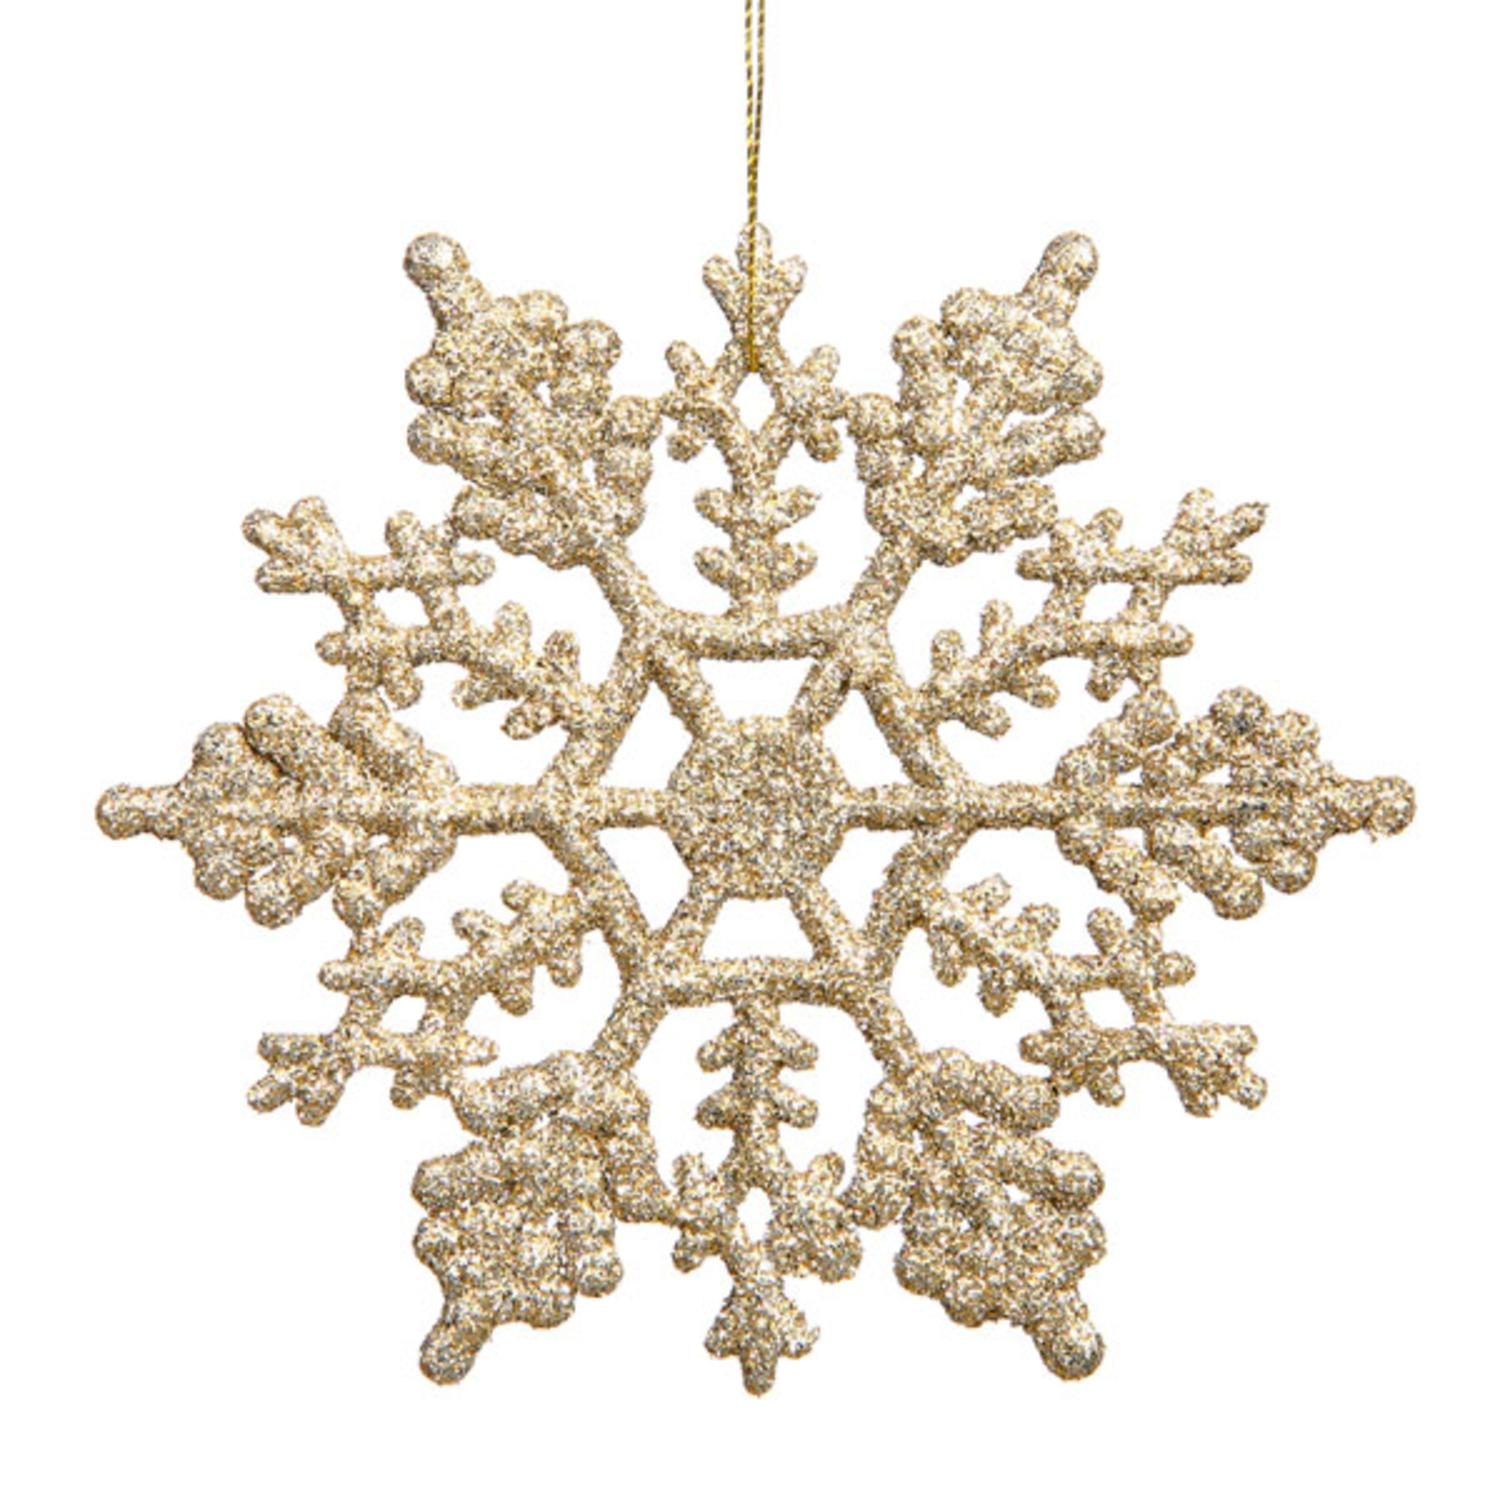 Club Pack of 24 Shimmering Champagne Glitter Snowflake Christmas Ornaments 3.75""